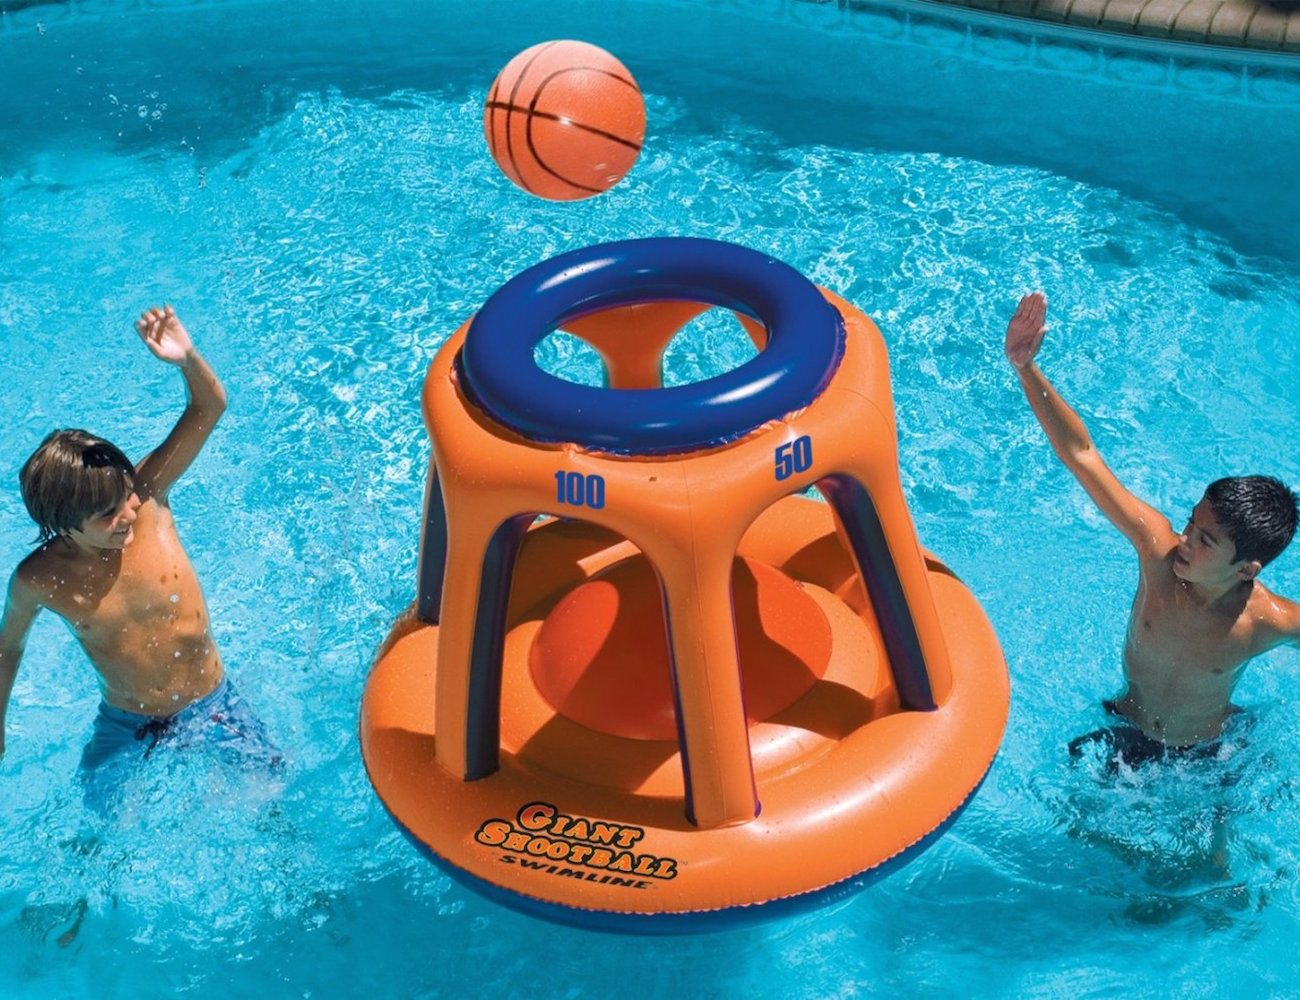 Swimline Giant Shootball Inflatable Pool Toy 187 Review